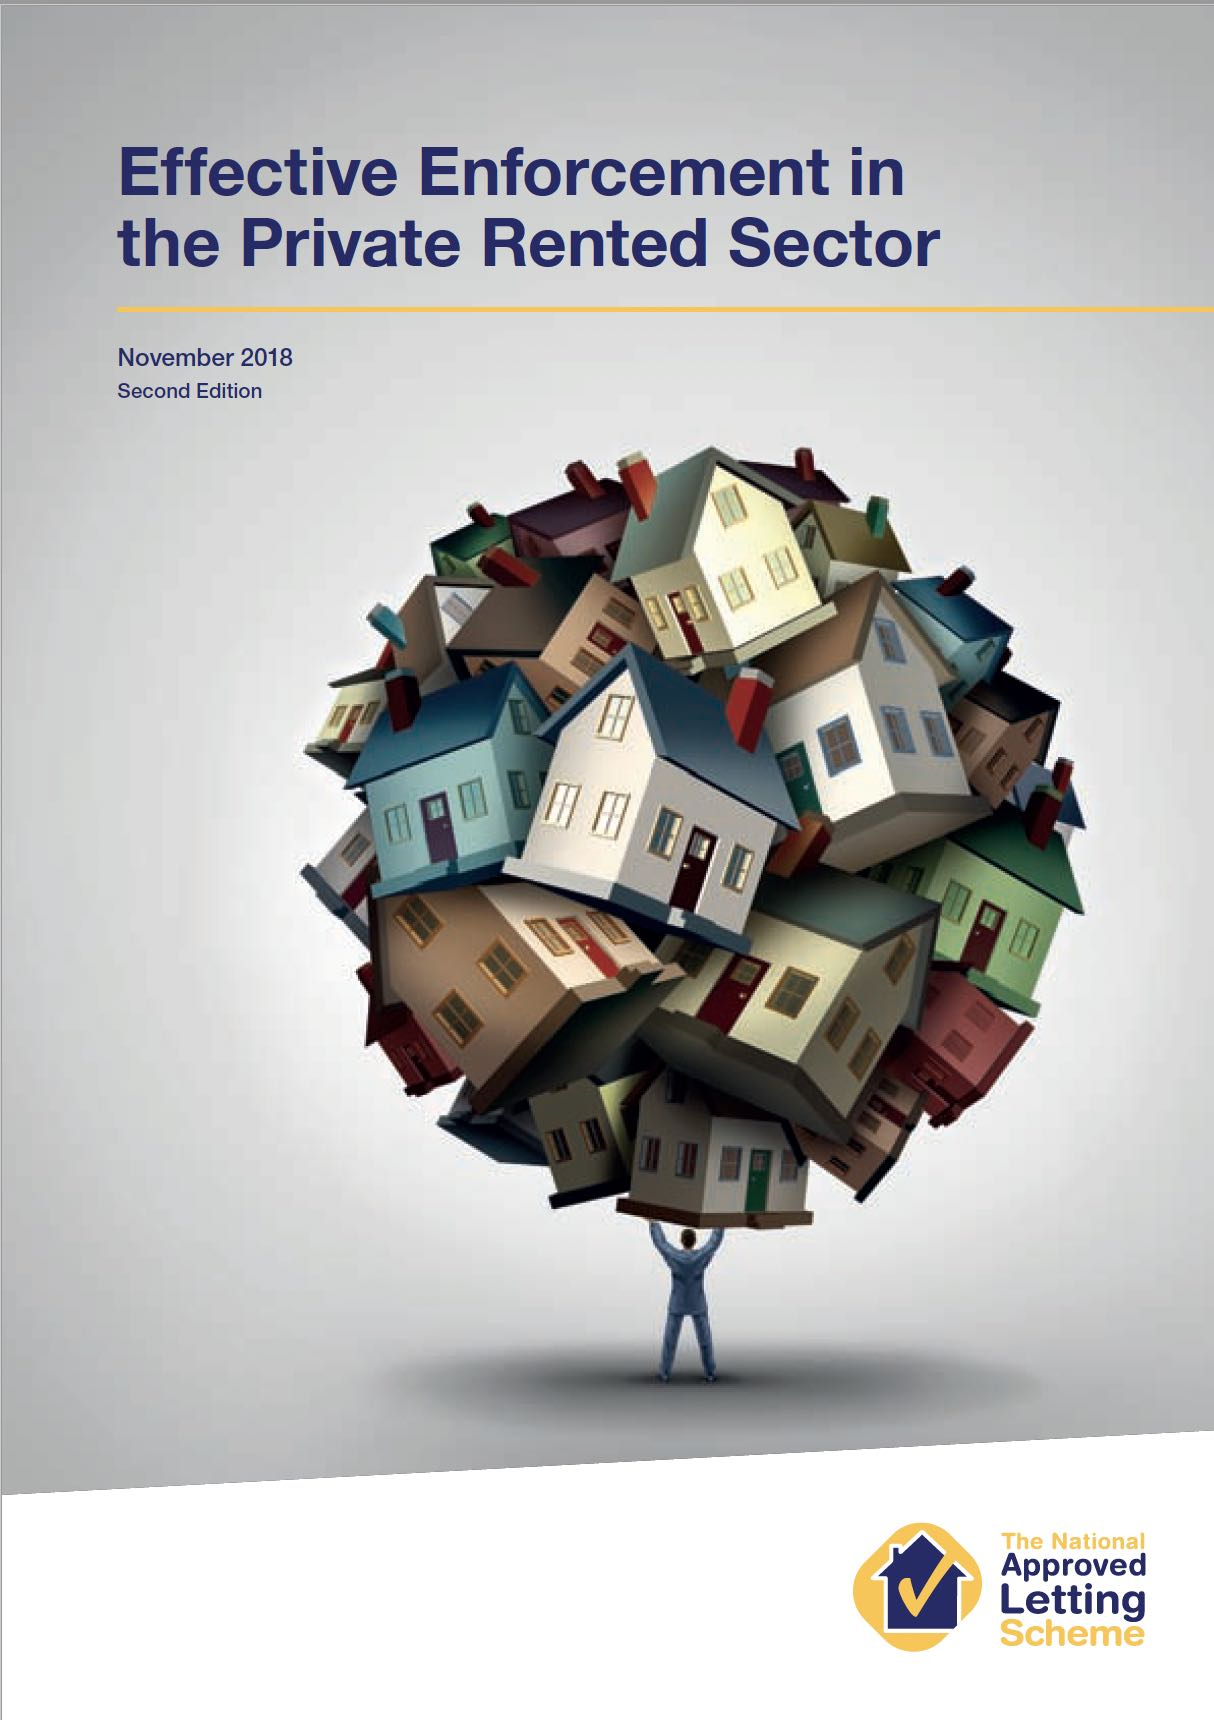 NALS Effective Enforcement in the Private Rented Sector Toolkit 2018